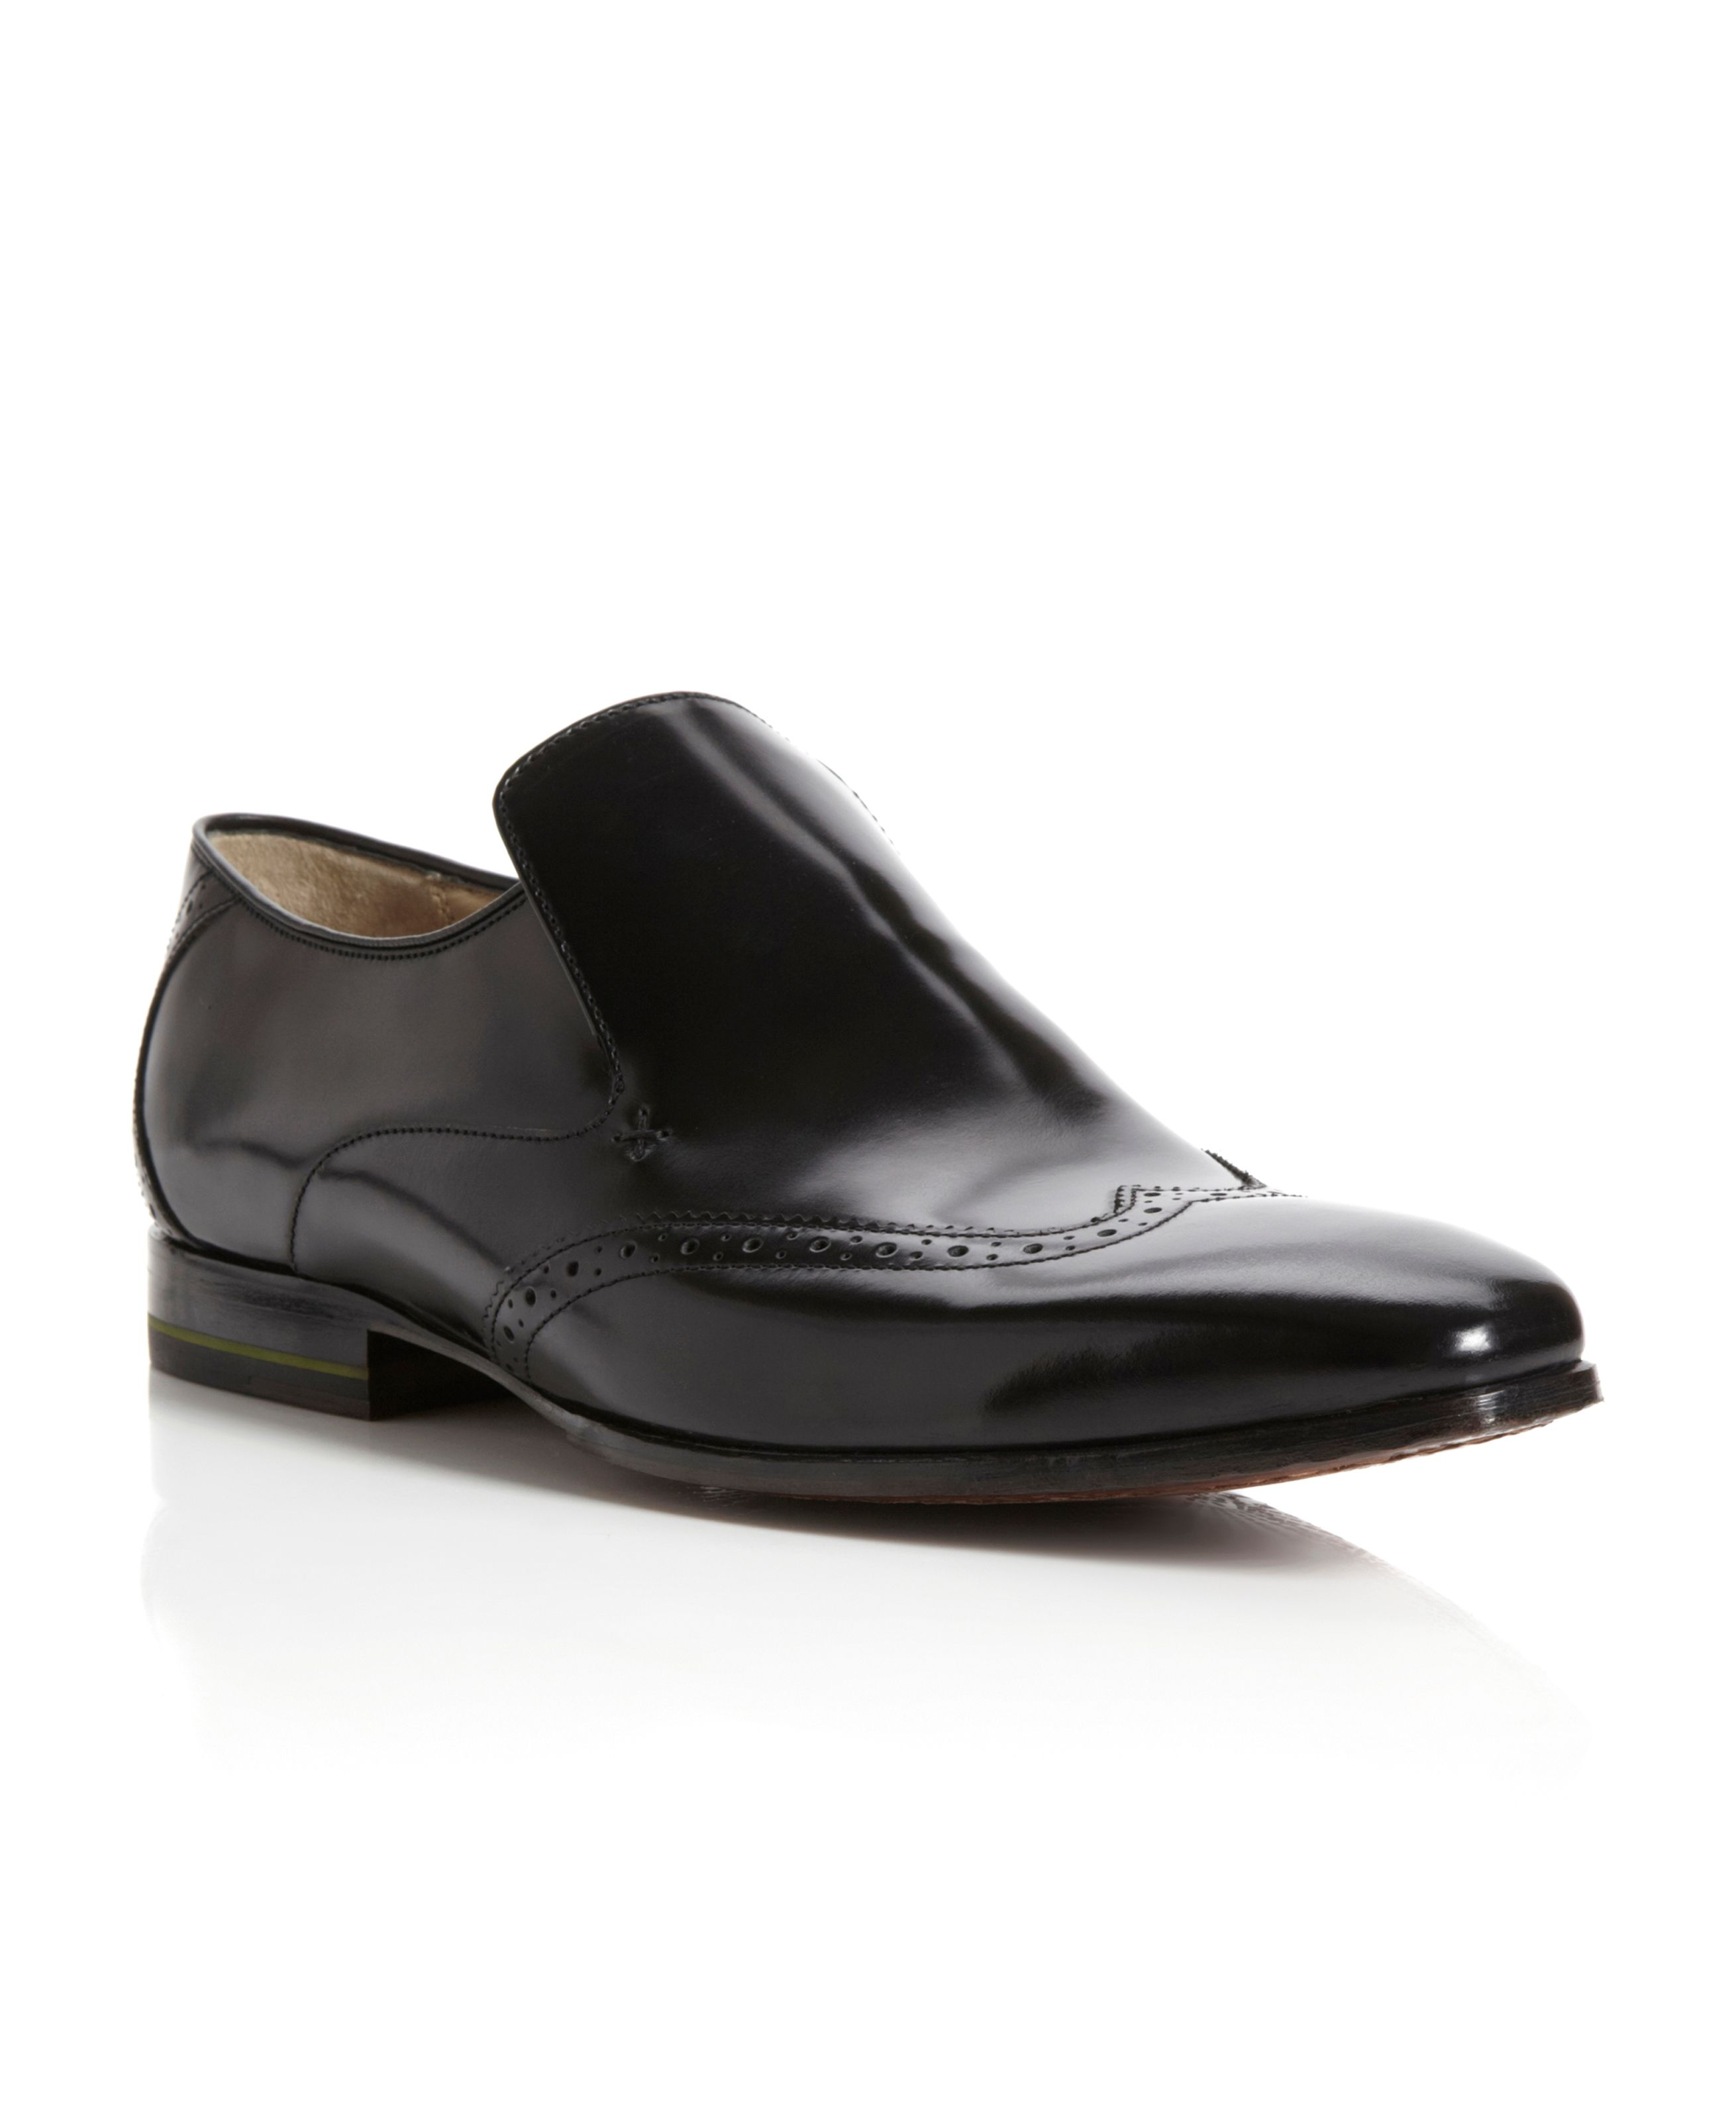 Bacton brogue slip on formal shoes